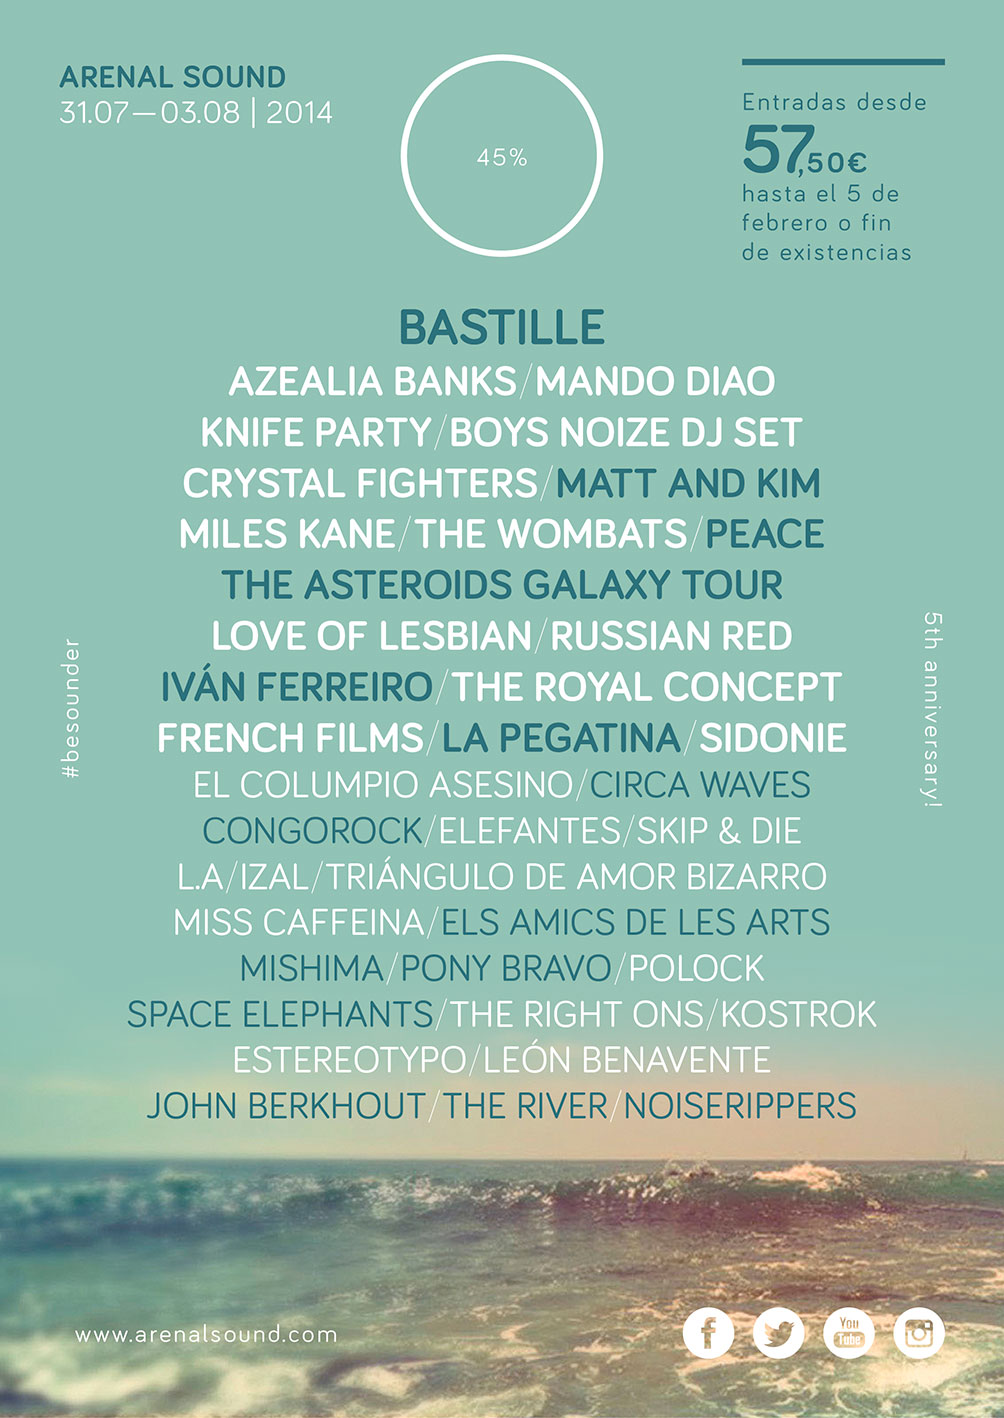 Arenal Sound Cartel 2014